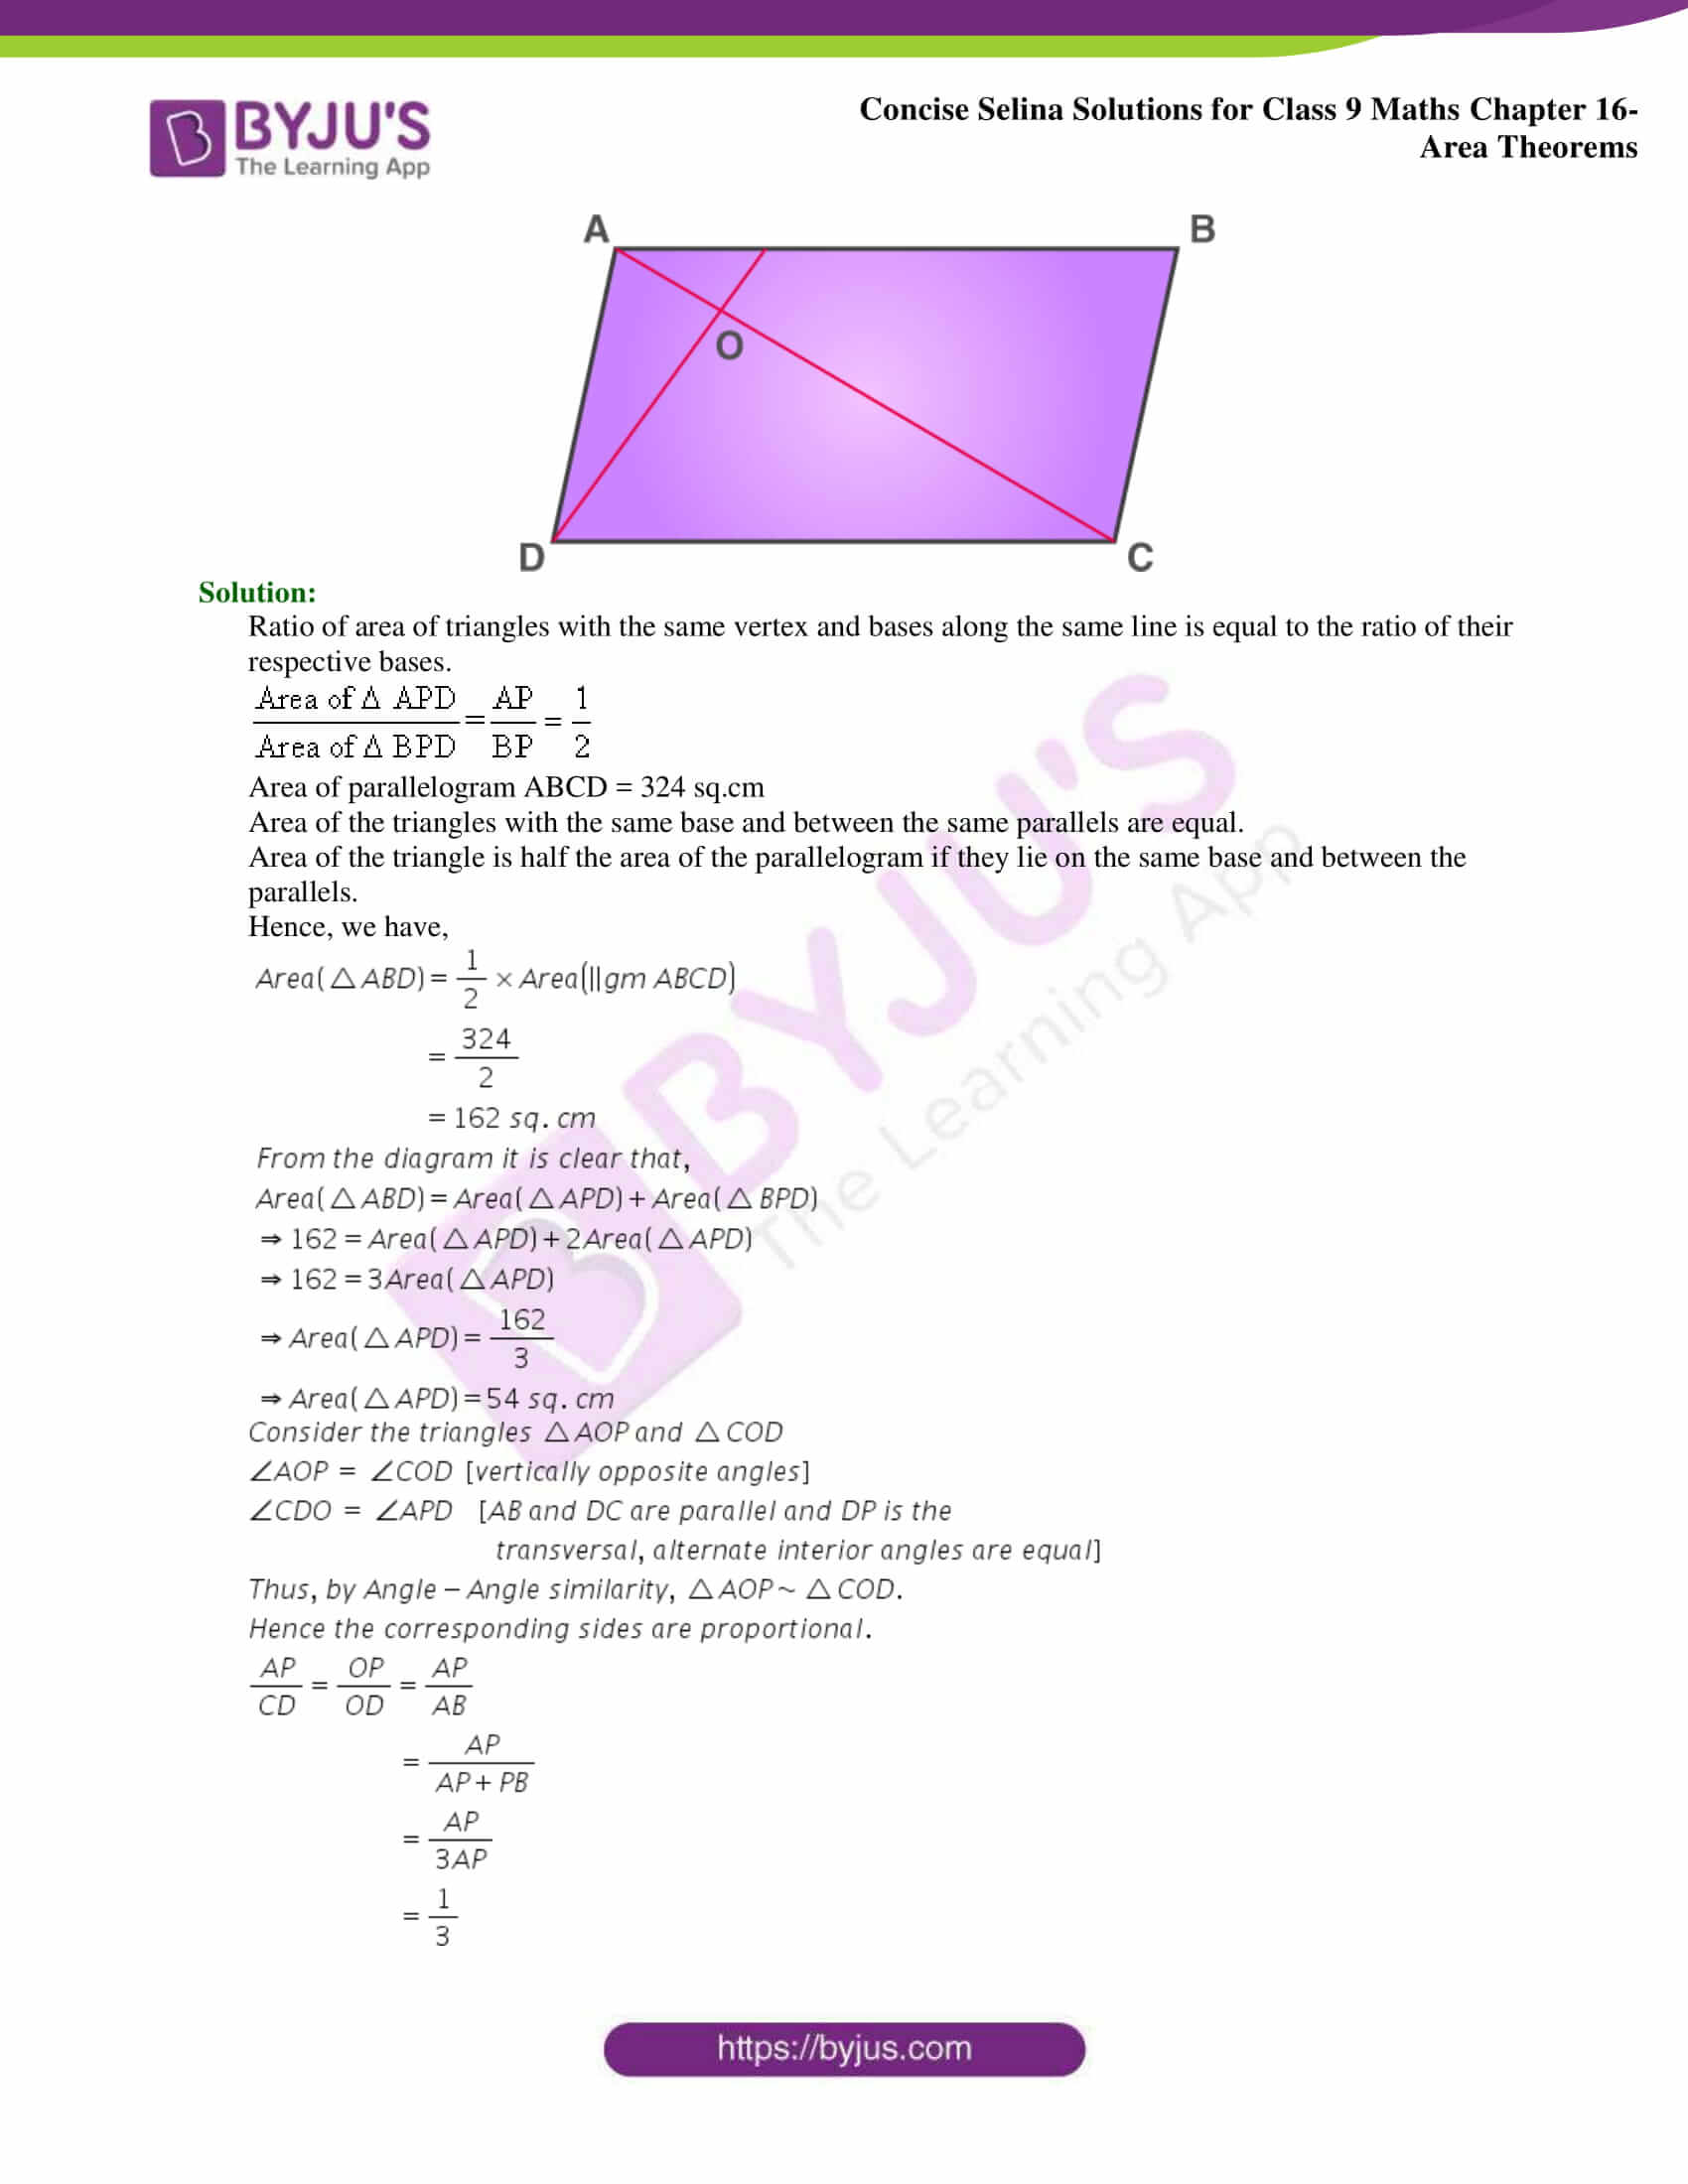 Concise Selina Solutions Class 9 Maths Chapter 16 Area Theorems part 24